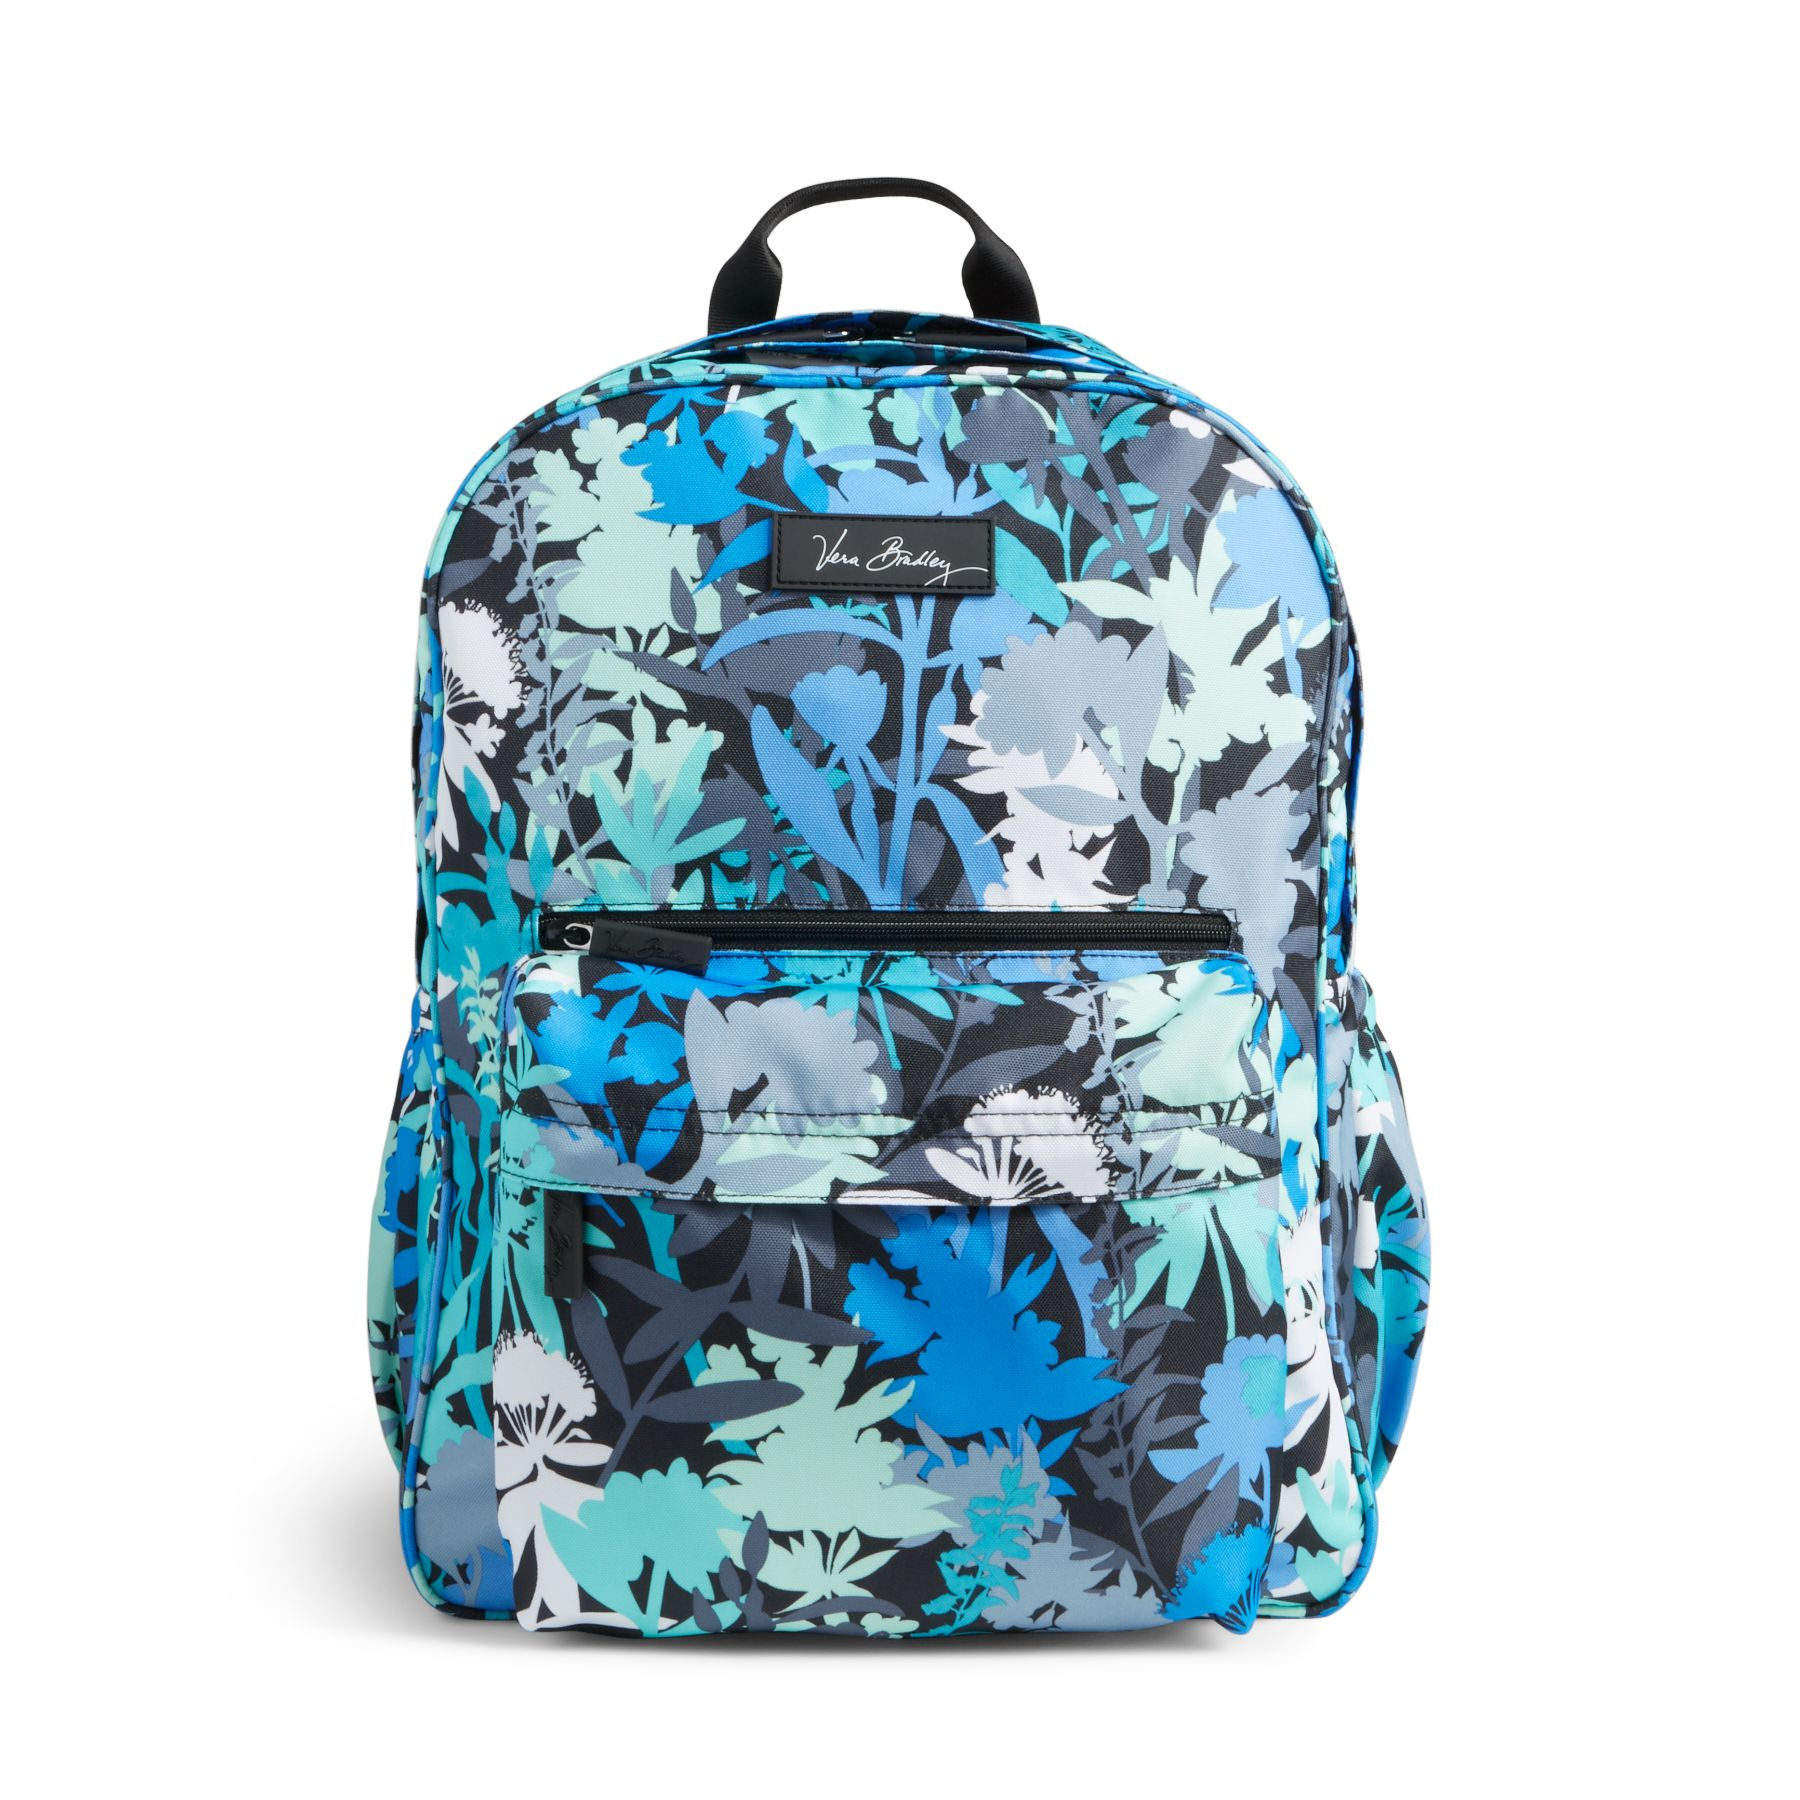 e26650405f6a UPC 886003345665 product image for Vera Bradley Lighten Up Grande Backpack  in Camofloral